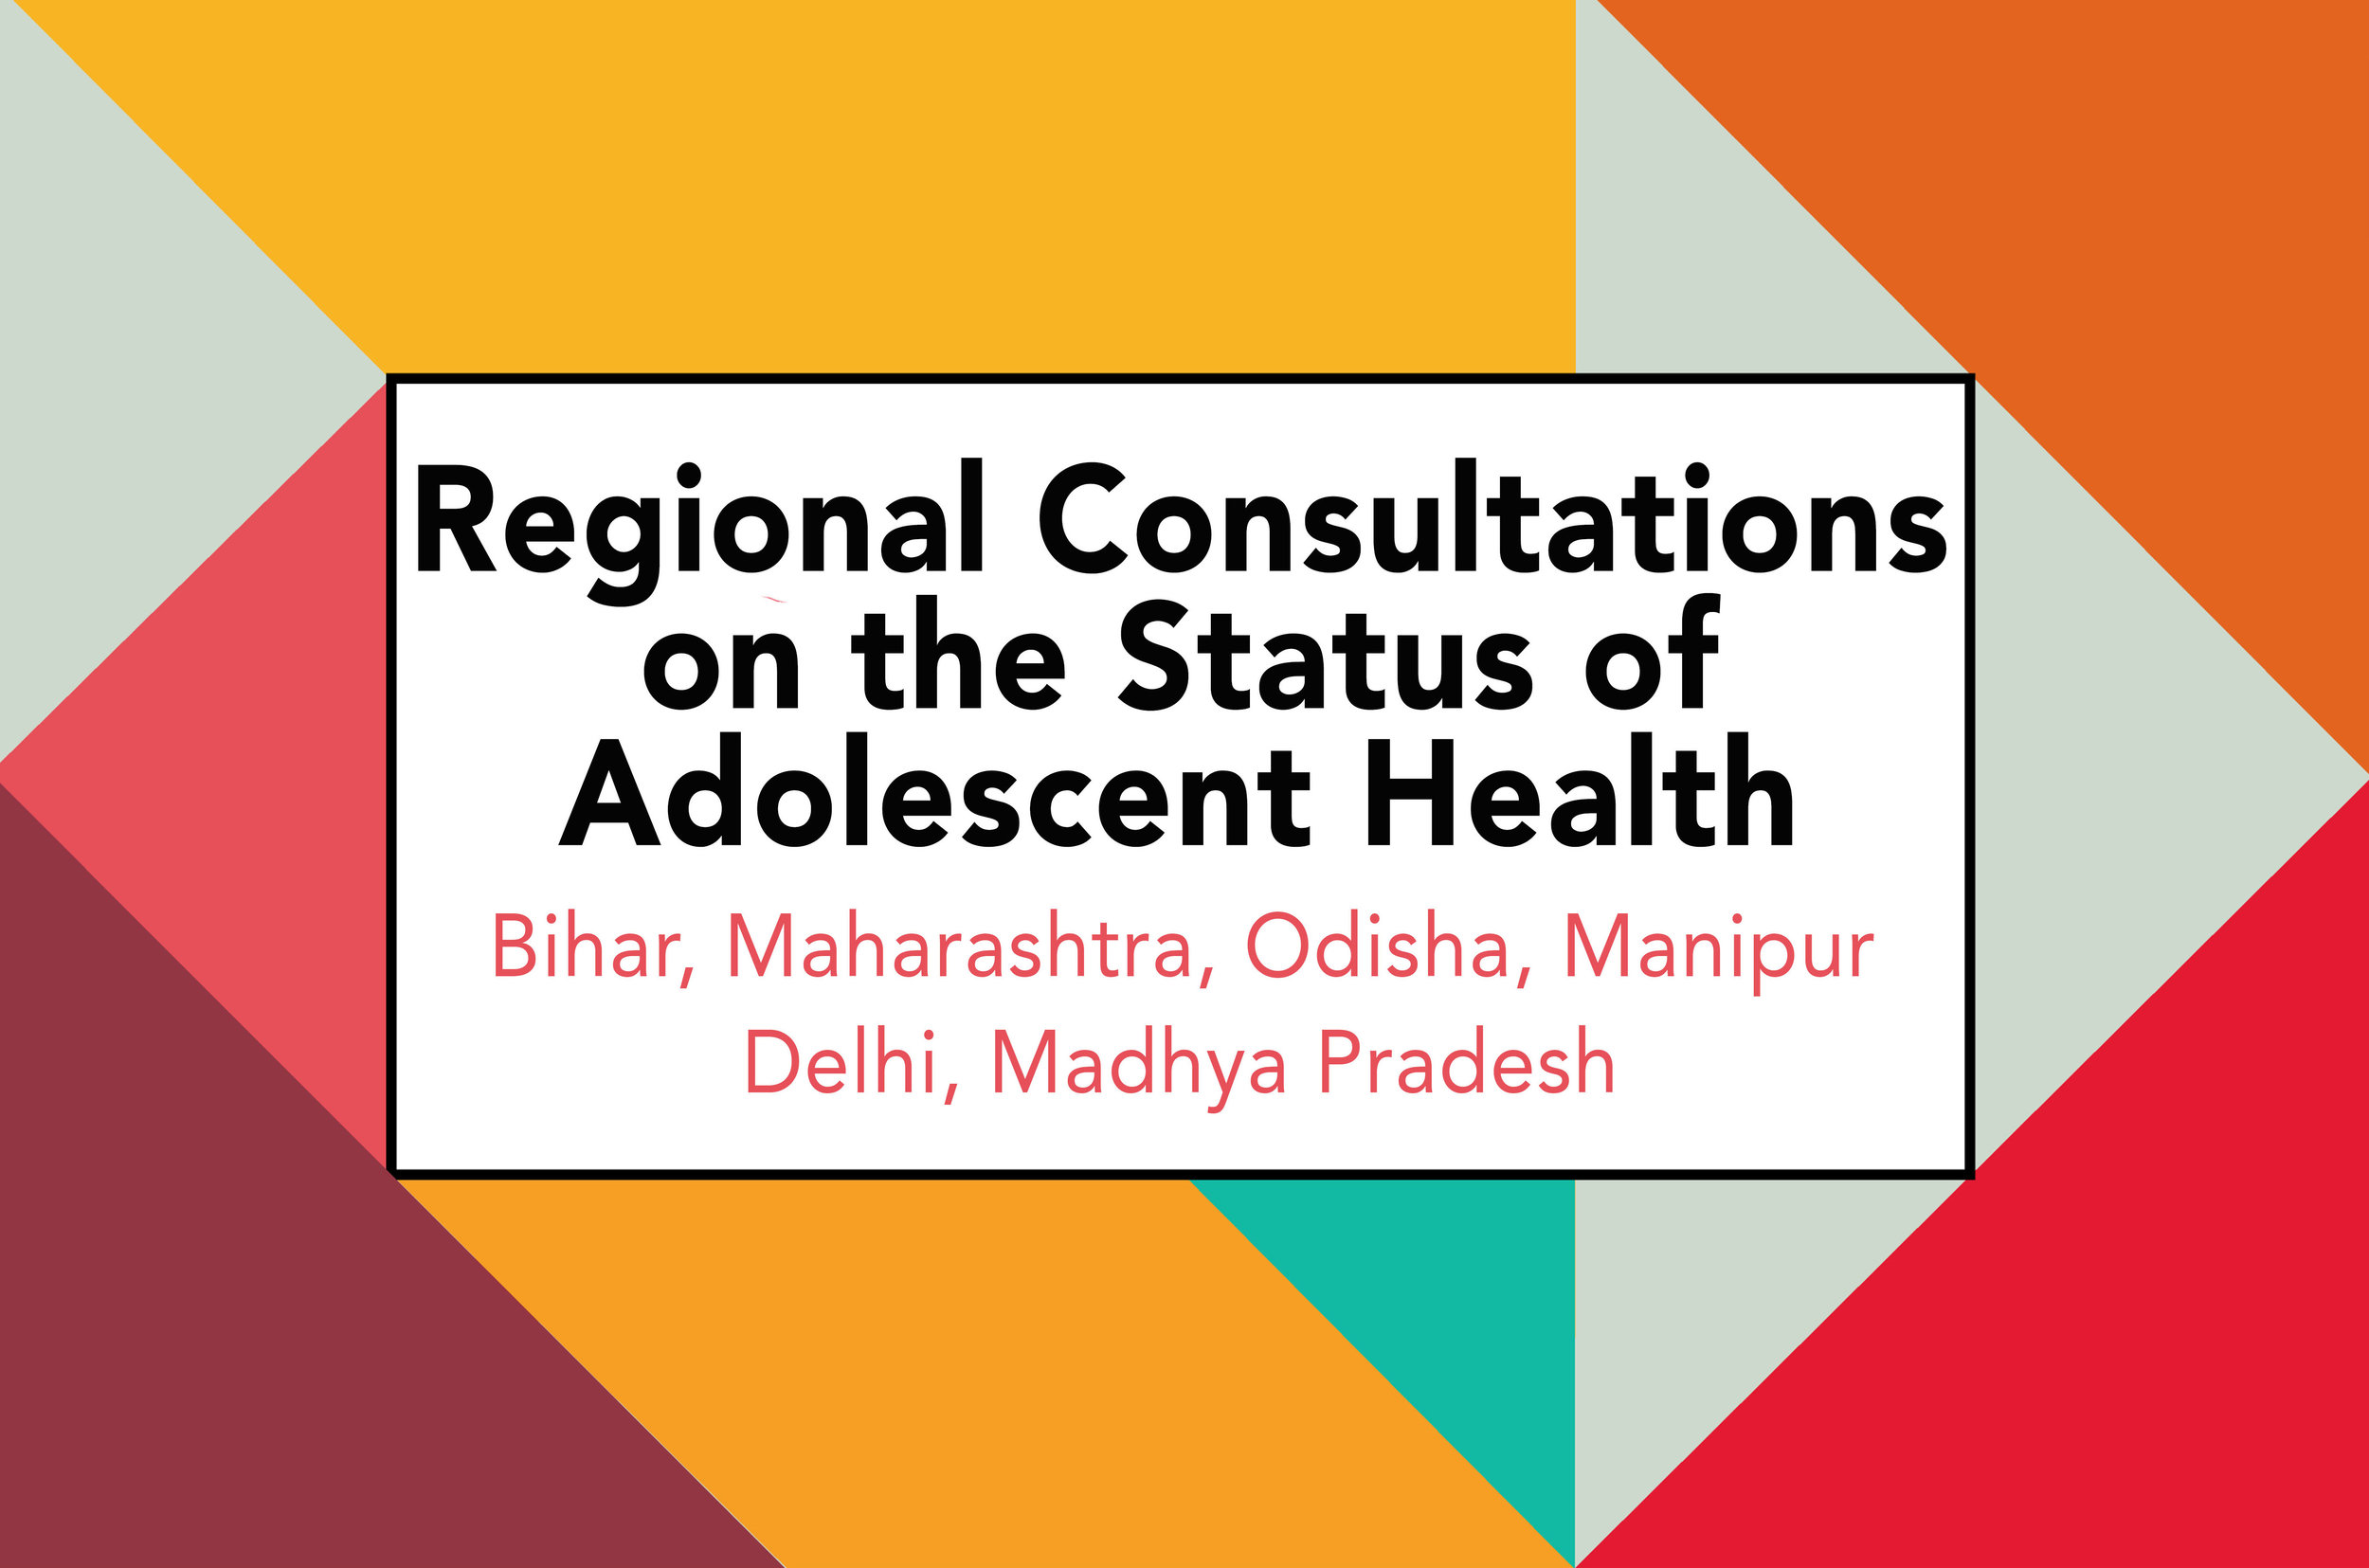 Regional Consultations on the Status of Adolescent Health, 2019